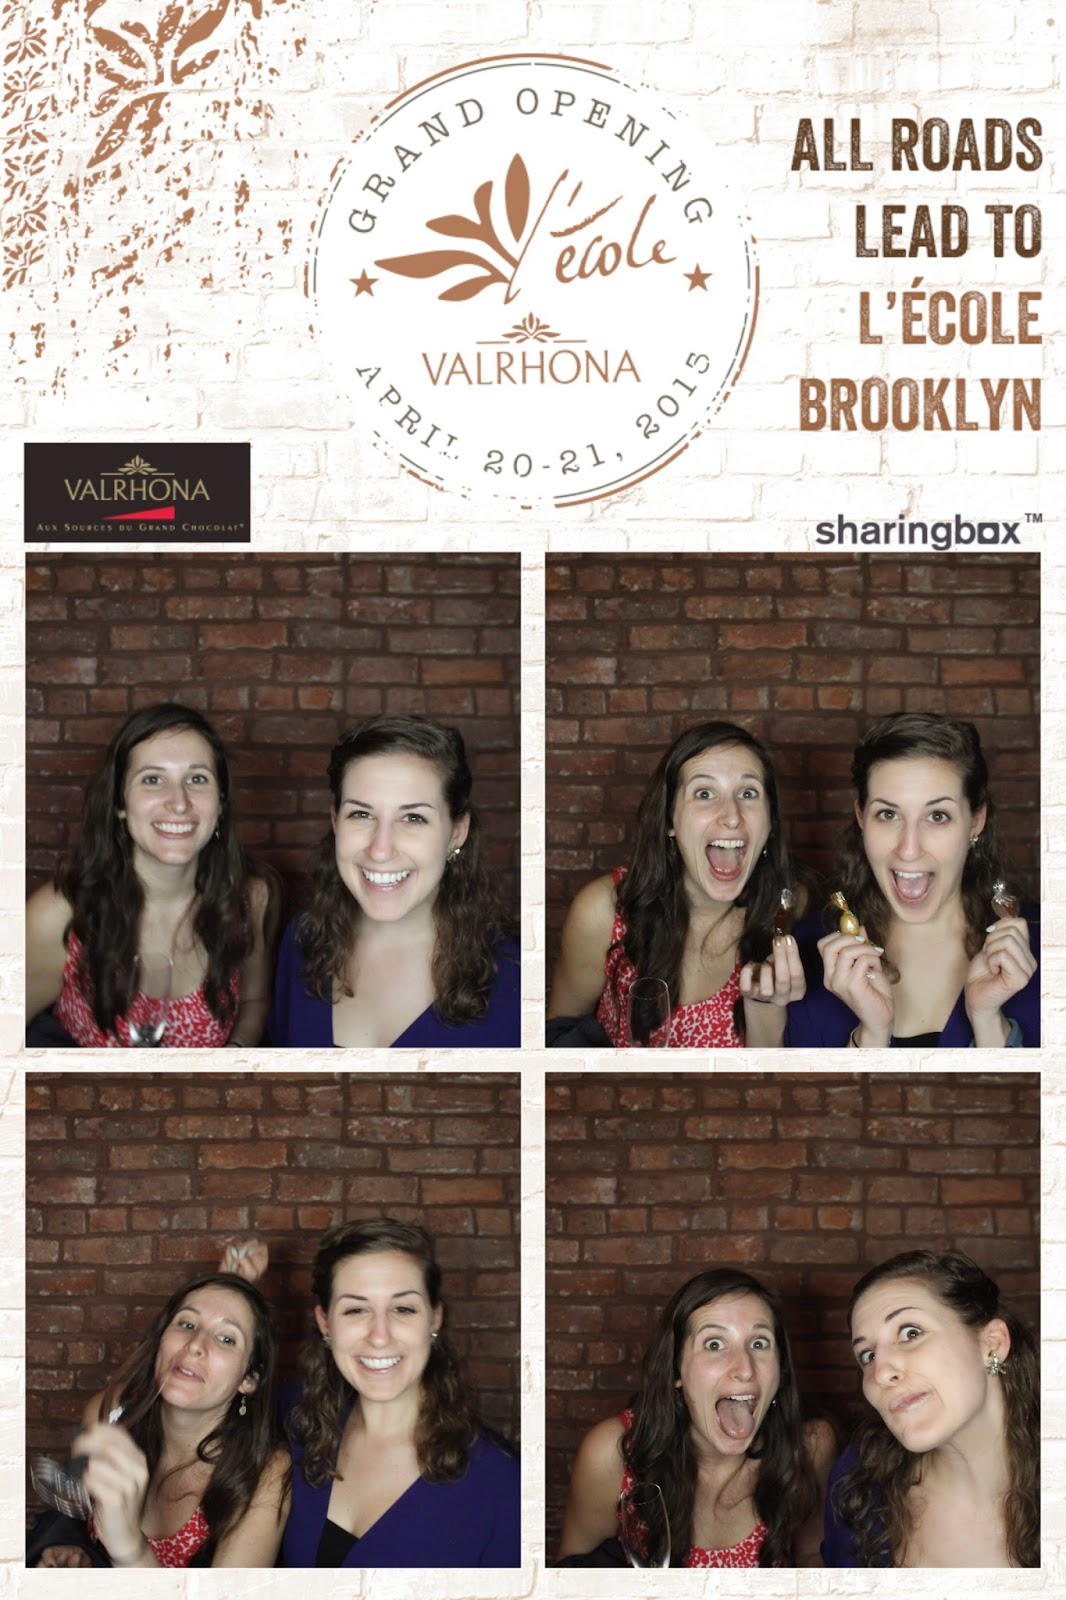 sharingbox photo booth from Valrhona party